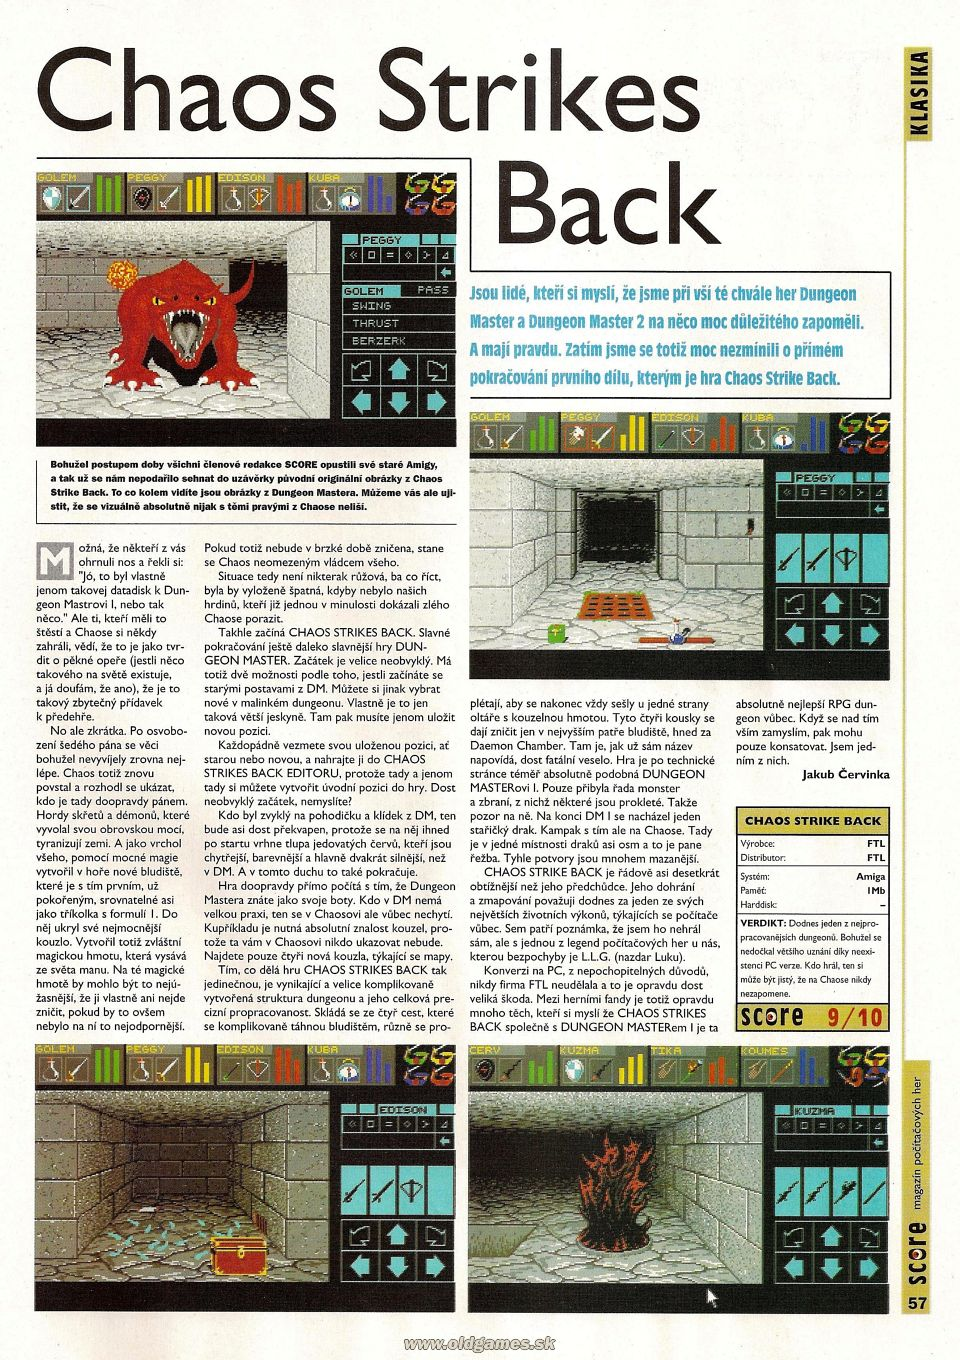 Chaos Strikes Back Review published in Czech magazine 'Score', Issue #27 March 1996, Page 57